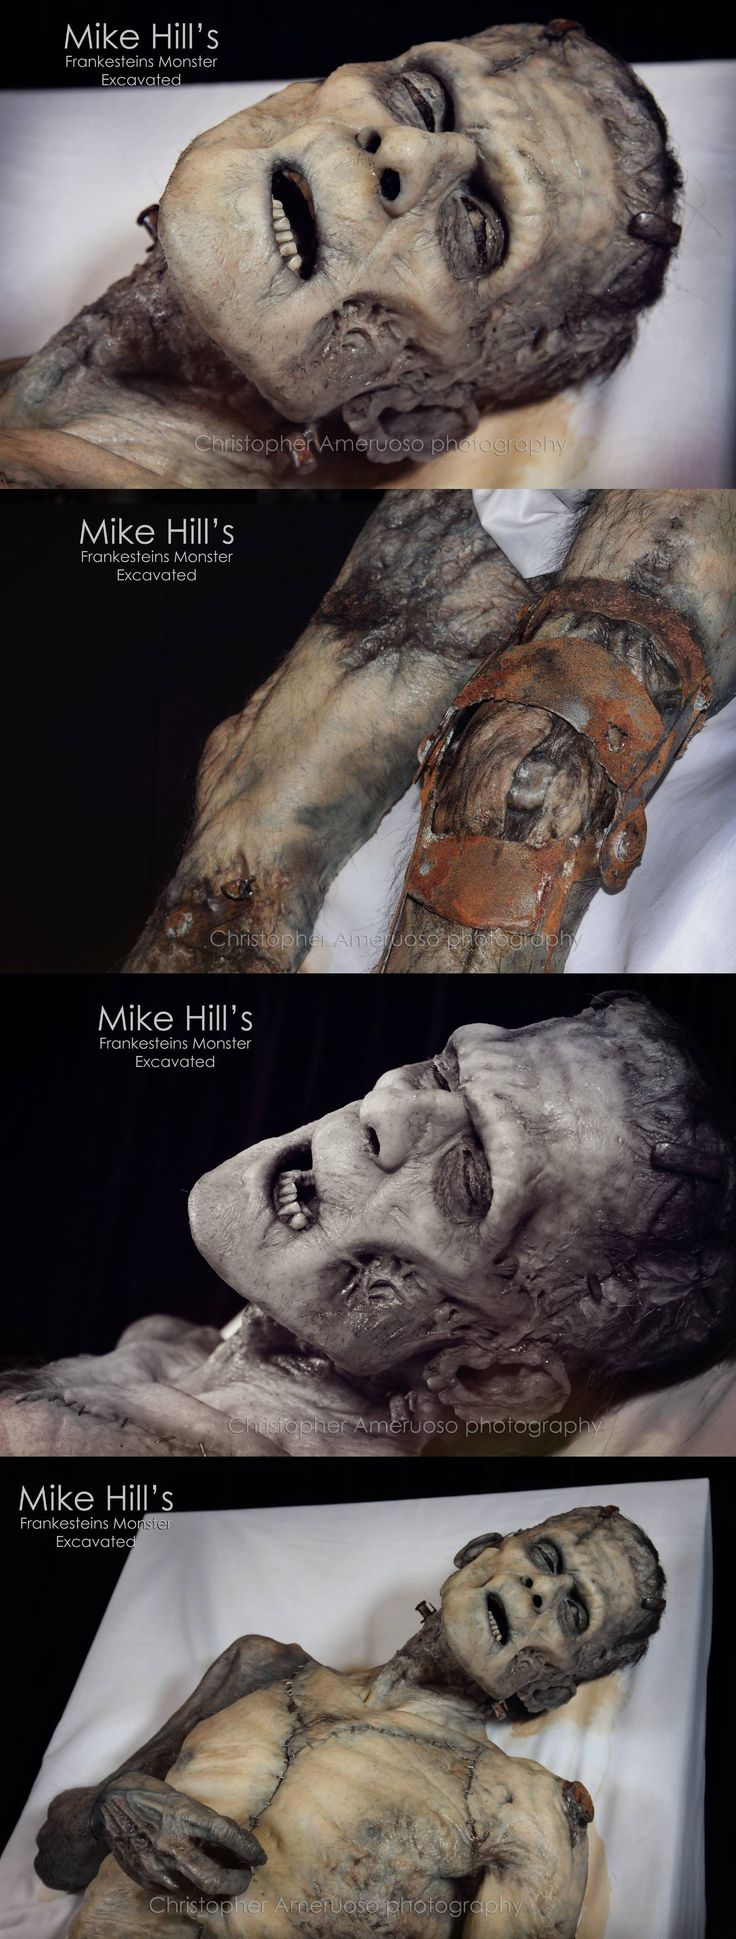 Monsterpalooza 2014. Mike Hills amazing Frankensteins Monster Excavated. Now YOU Can Create Mind-Blowing Artistic Images With Top Secret Photography Tutorials With Step-By-Step Instructions! http://trick-photo-graphybook-today.blogspot.com?prod=D8HOJHcV